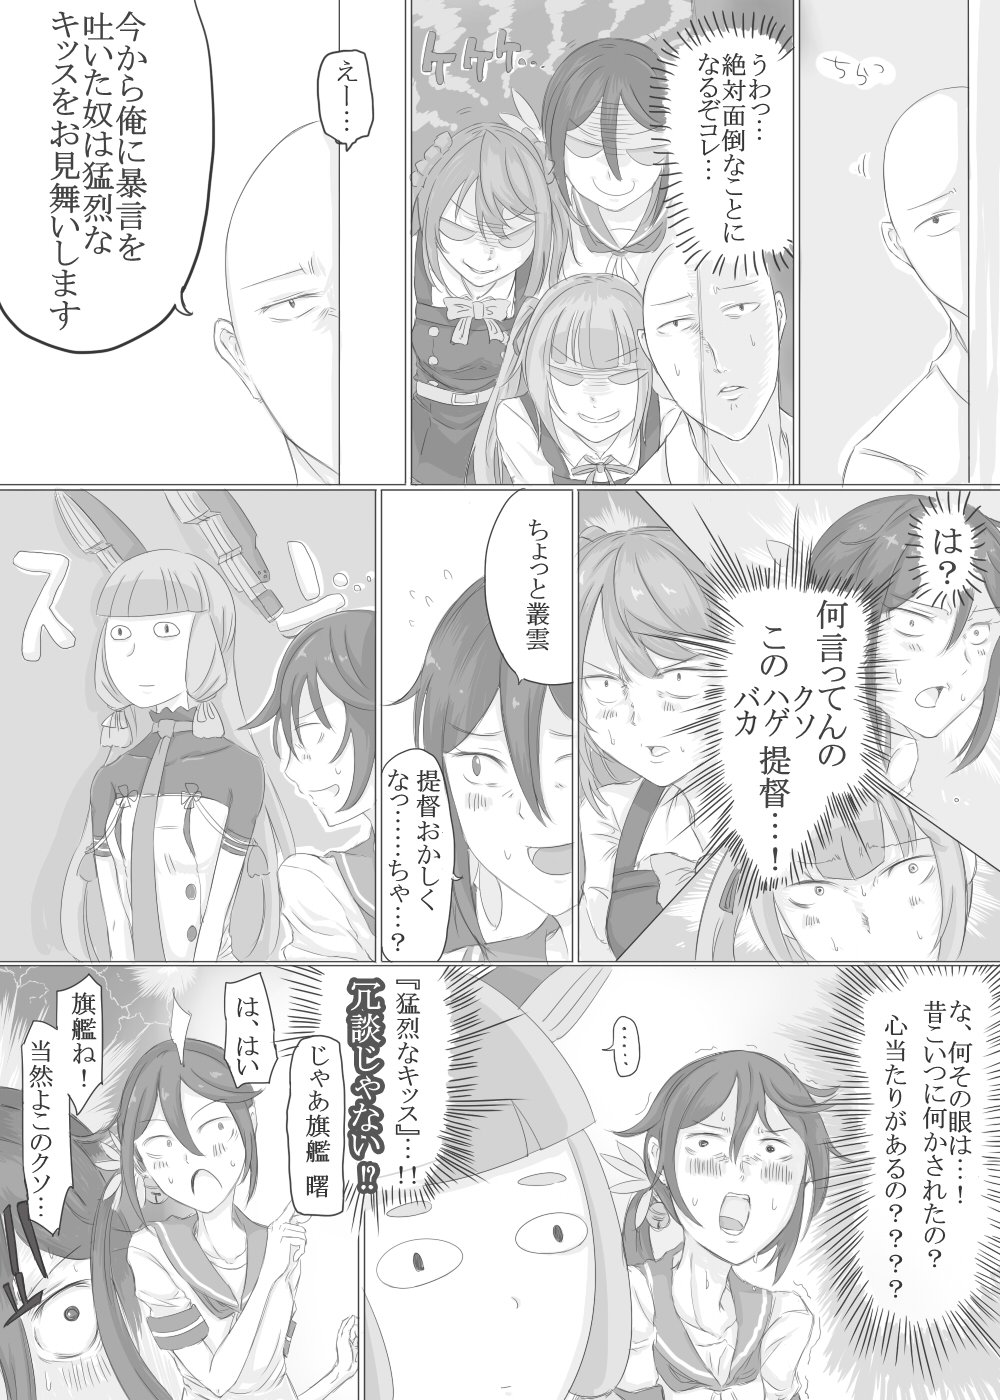 1boy 4girls :d admiral_(kantai_collection) akebono_(kantai_collection) bald bangs bell belt blunt_bangs blush bodysuit buttons closed_mouth collarbone collared_shirt comic commentary_request constricted_pupils covered_collarbone double_bun dress eyebrows_visible_through_hair flower frown greyscale grin hair_bell hair_between_eyes hair_flower hair_ornament headgear highres jingle_bell kantai_collection kasumi_(kantai_collection) long_hair long_sleeves michishio_(kantai_collection) monochrome multiple_girls murakumo_(kantai_collection) neck_ribbon neckerchief necktie open_mouth pinafore_dress remodel_(kantai_collection) ribbon school_uniform serafuku shaded_face shirt short_sleeves smile speech_bubble spoken_ellipsis sweat taneichi_(taneiti) thick_eyebrows translated trembling twintails wall